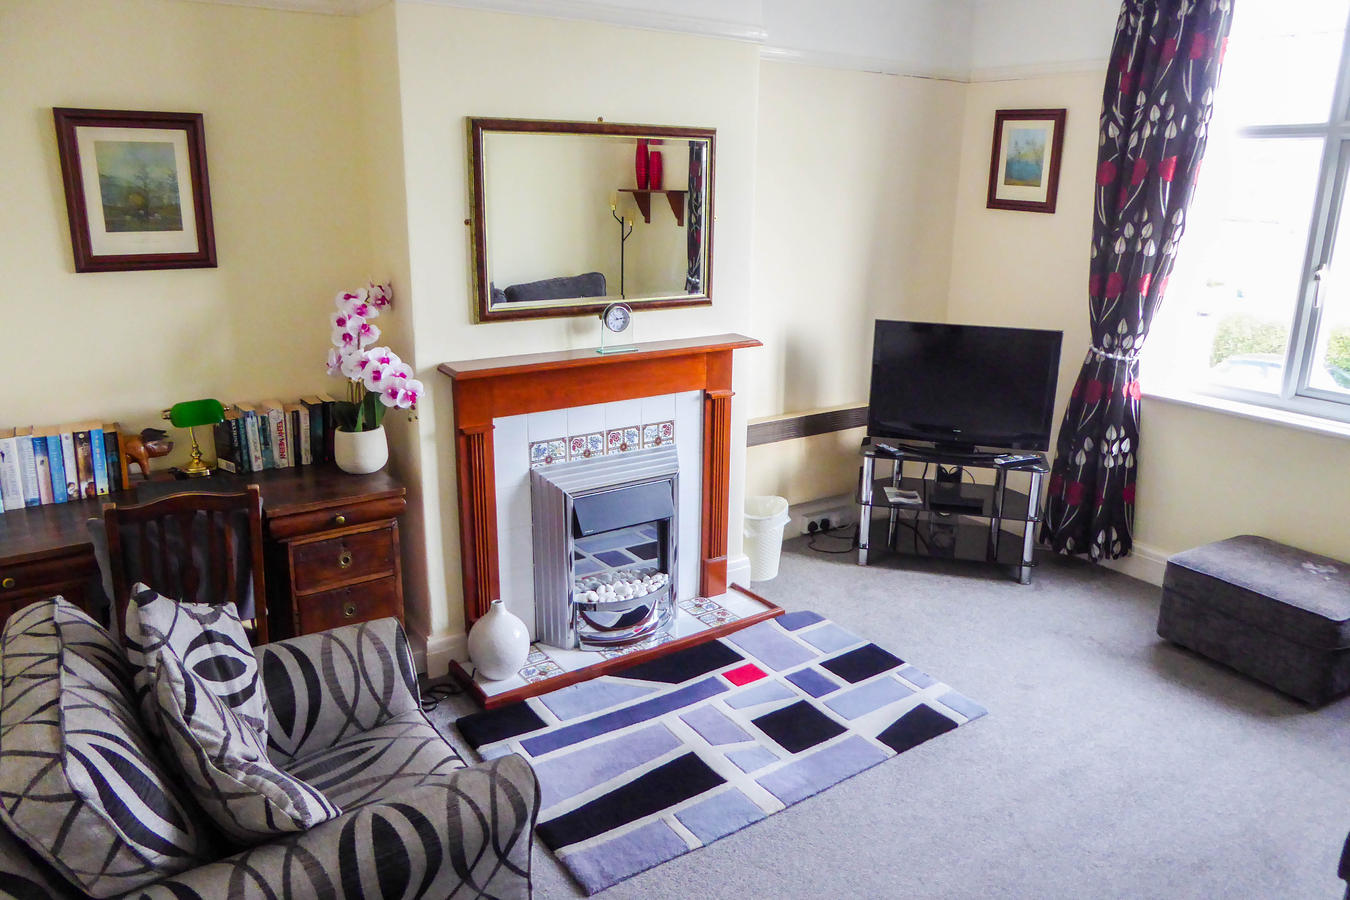 Orchid apartment main image